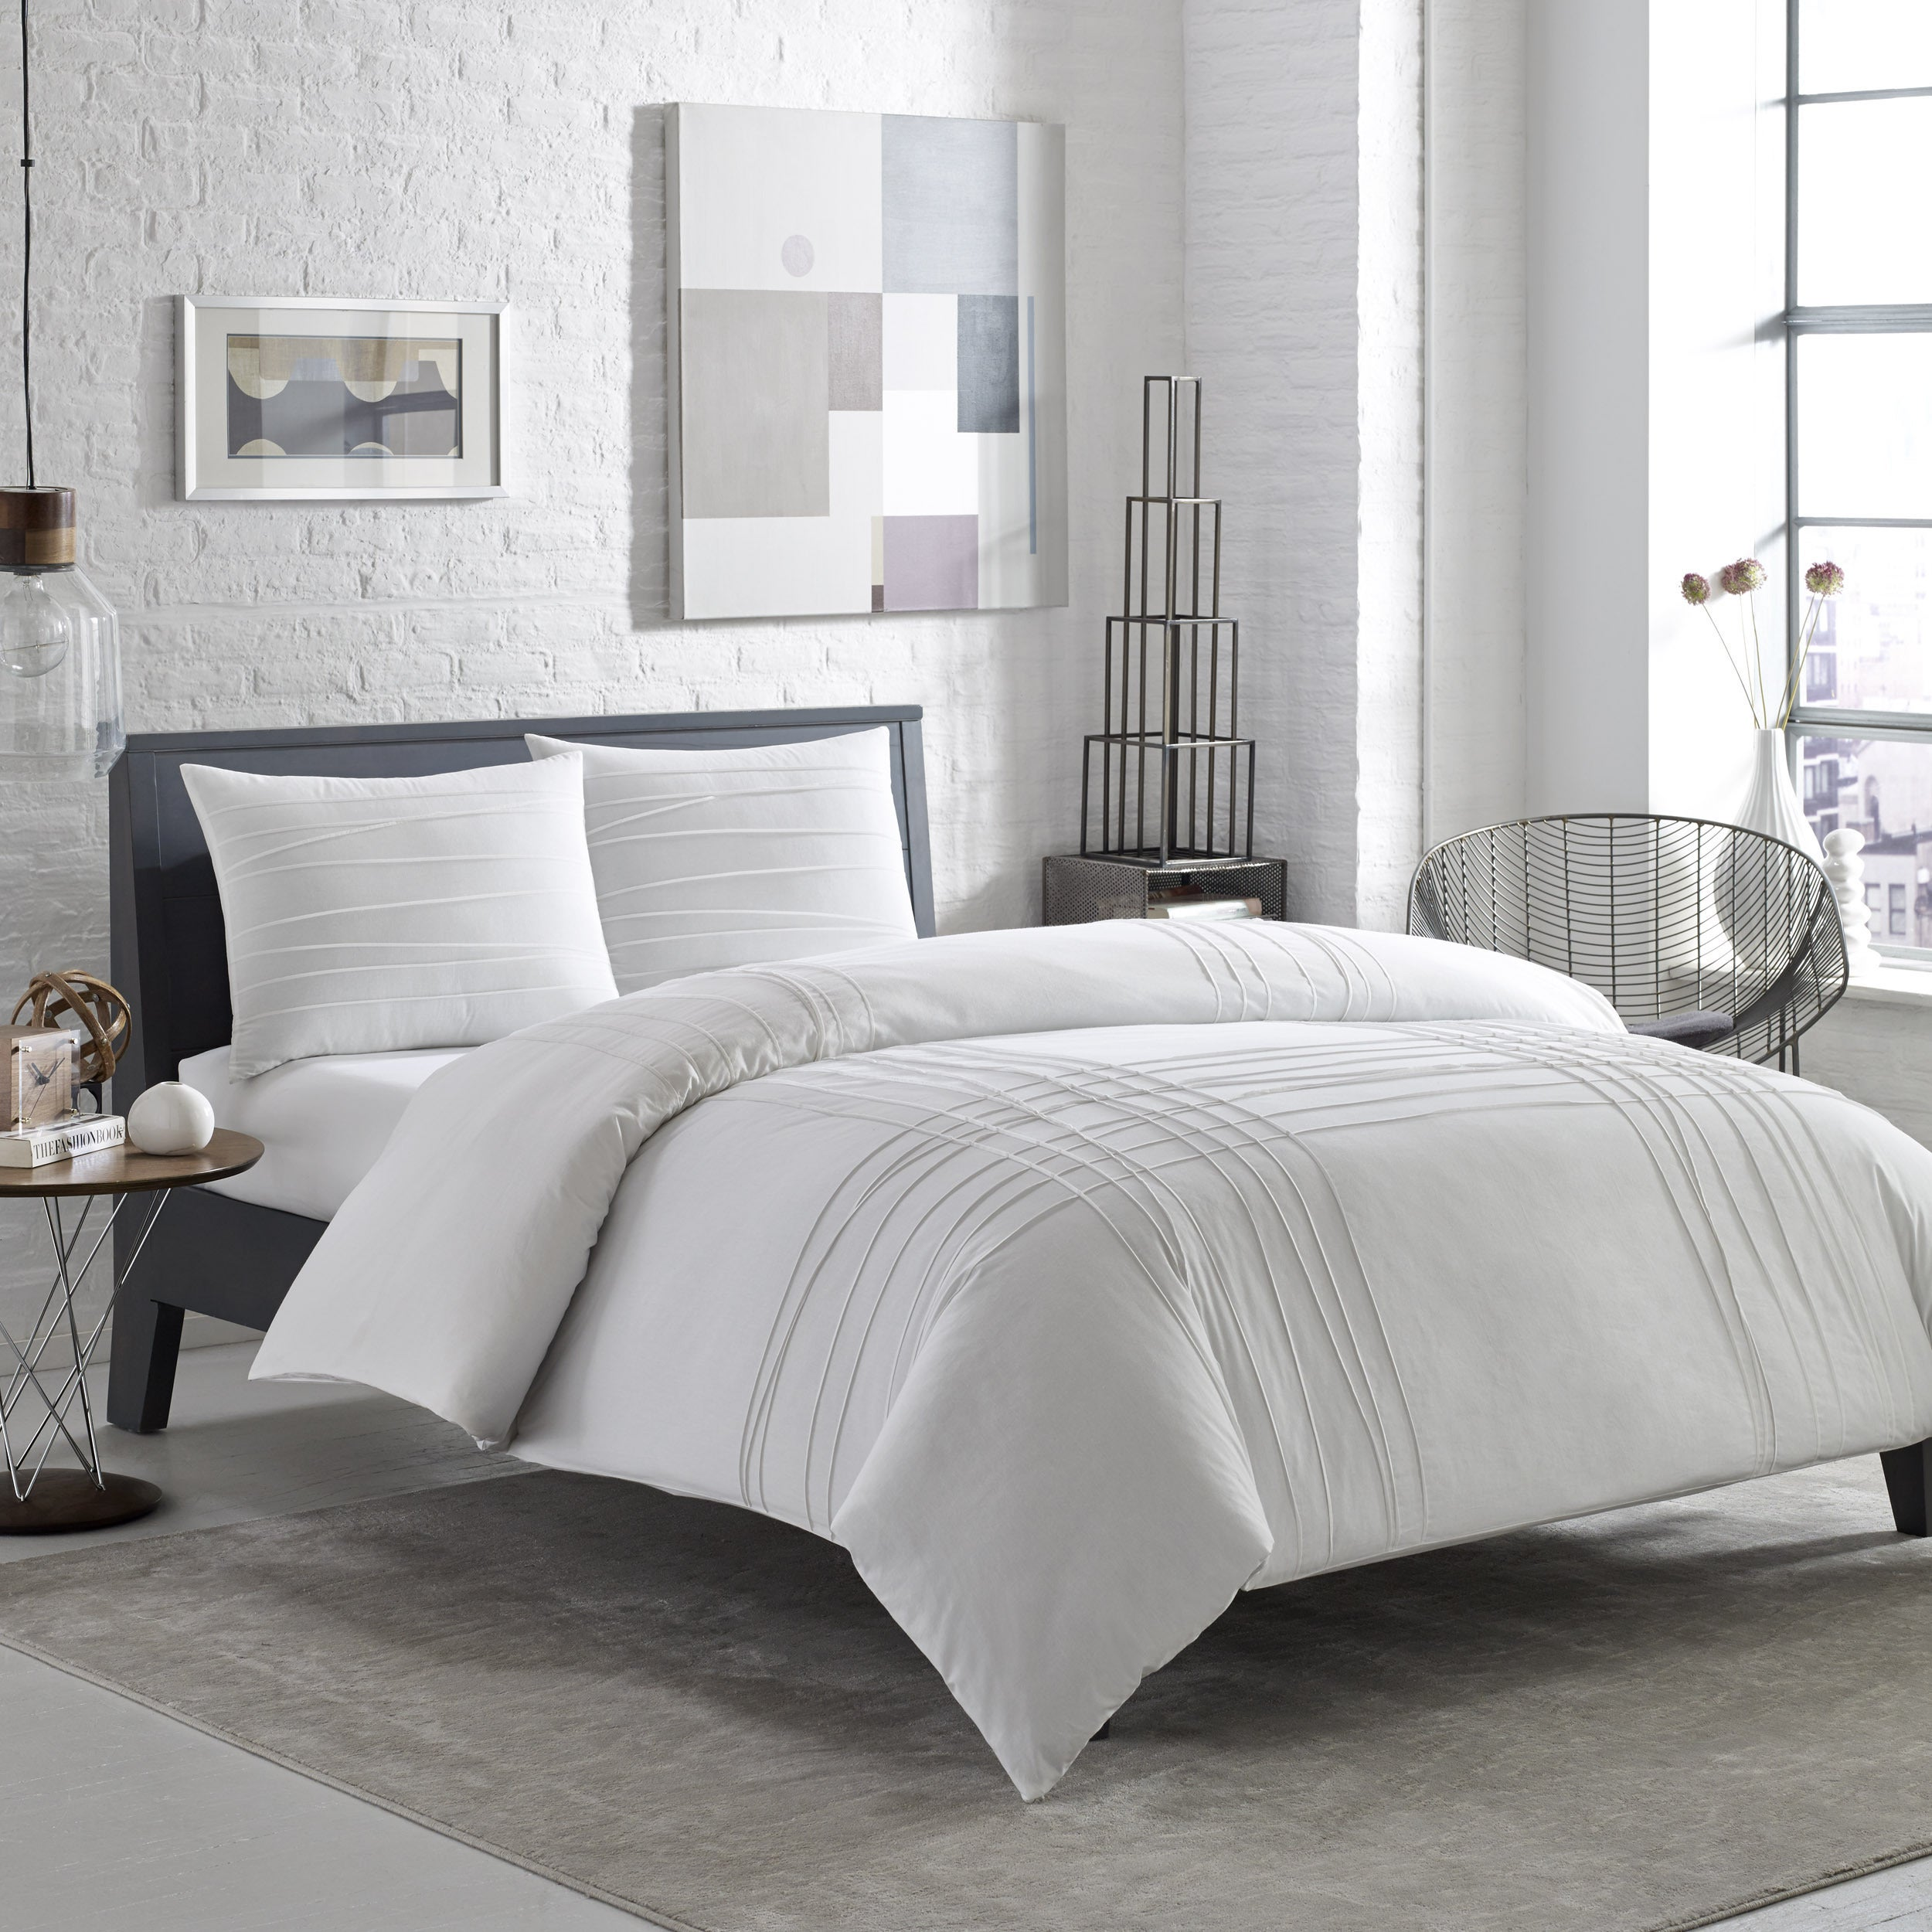 bed product bedding park overstock cotton com brady bath essentials coverlet and complete blue madison sheet set